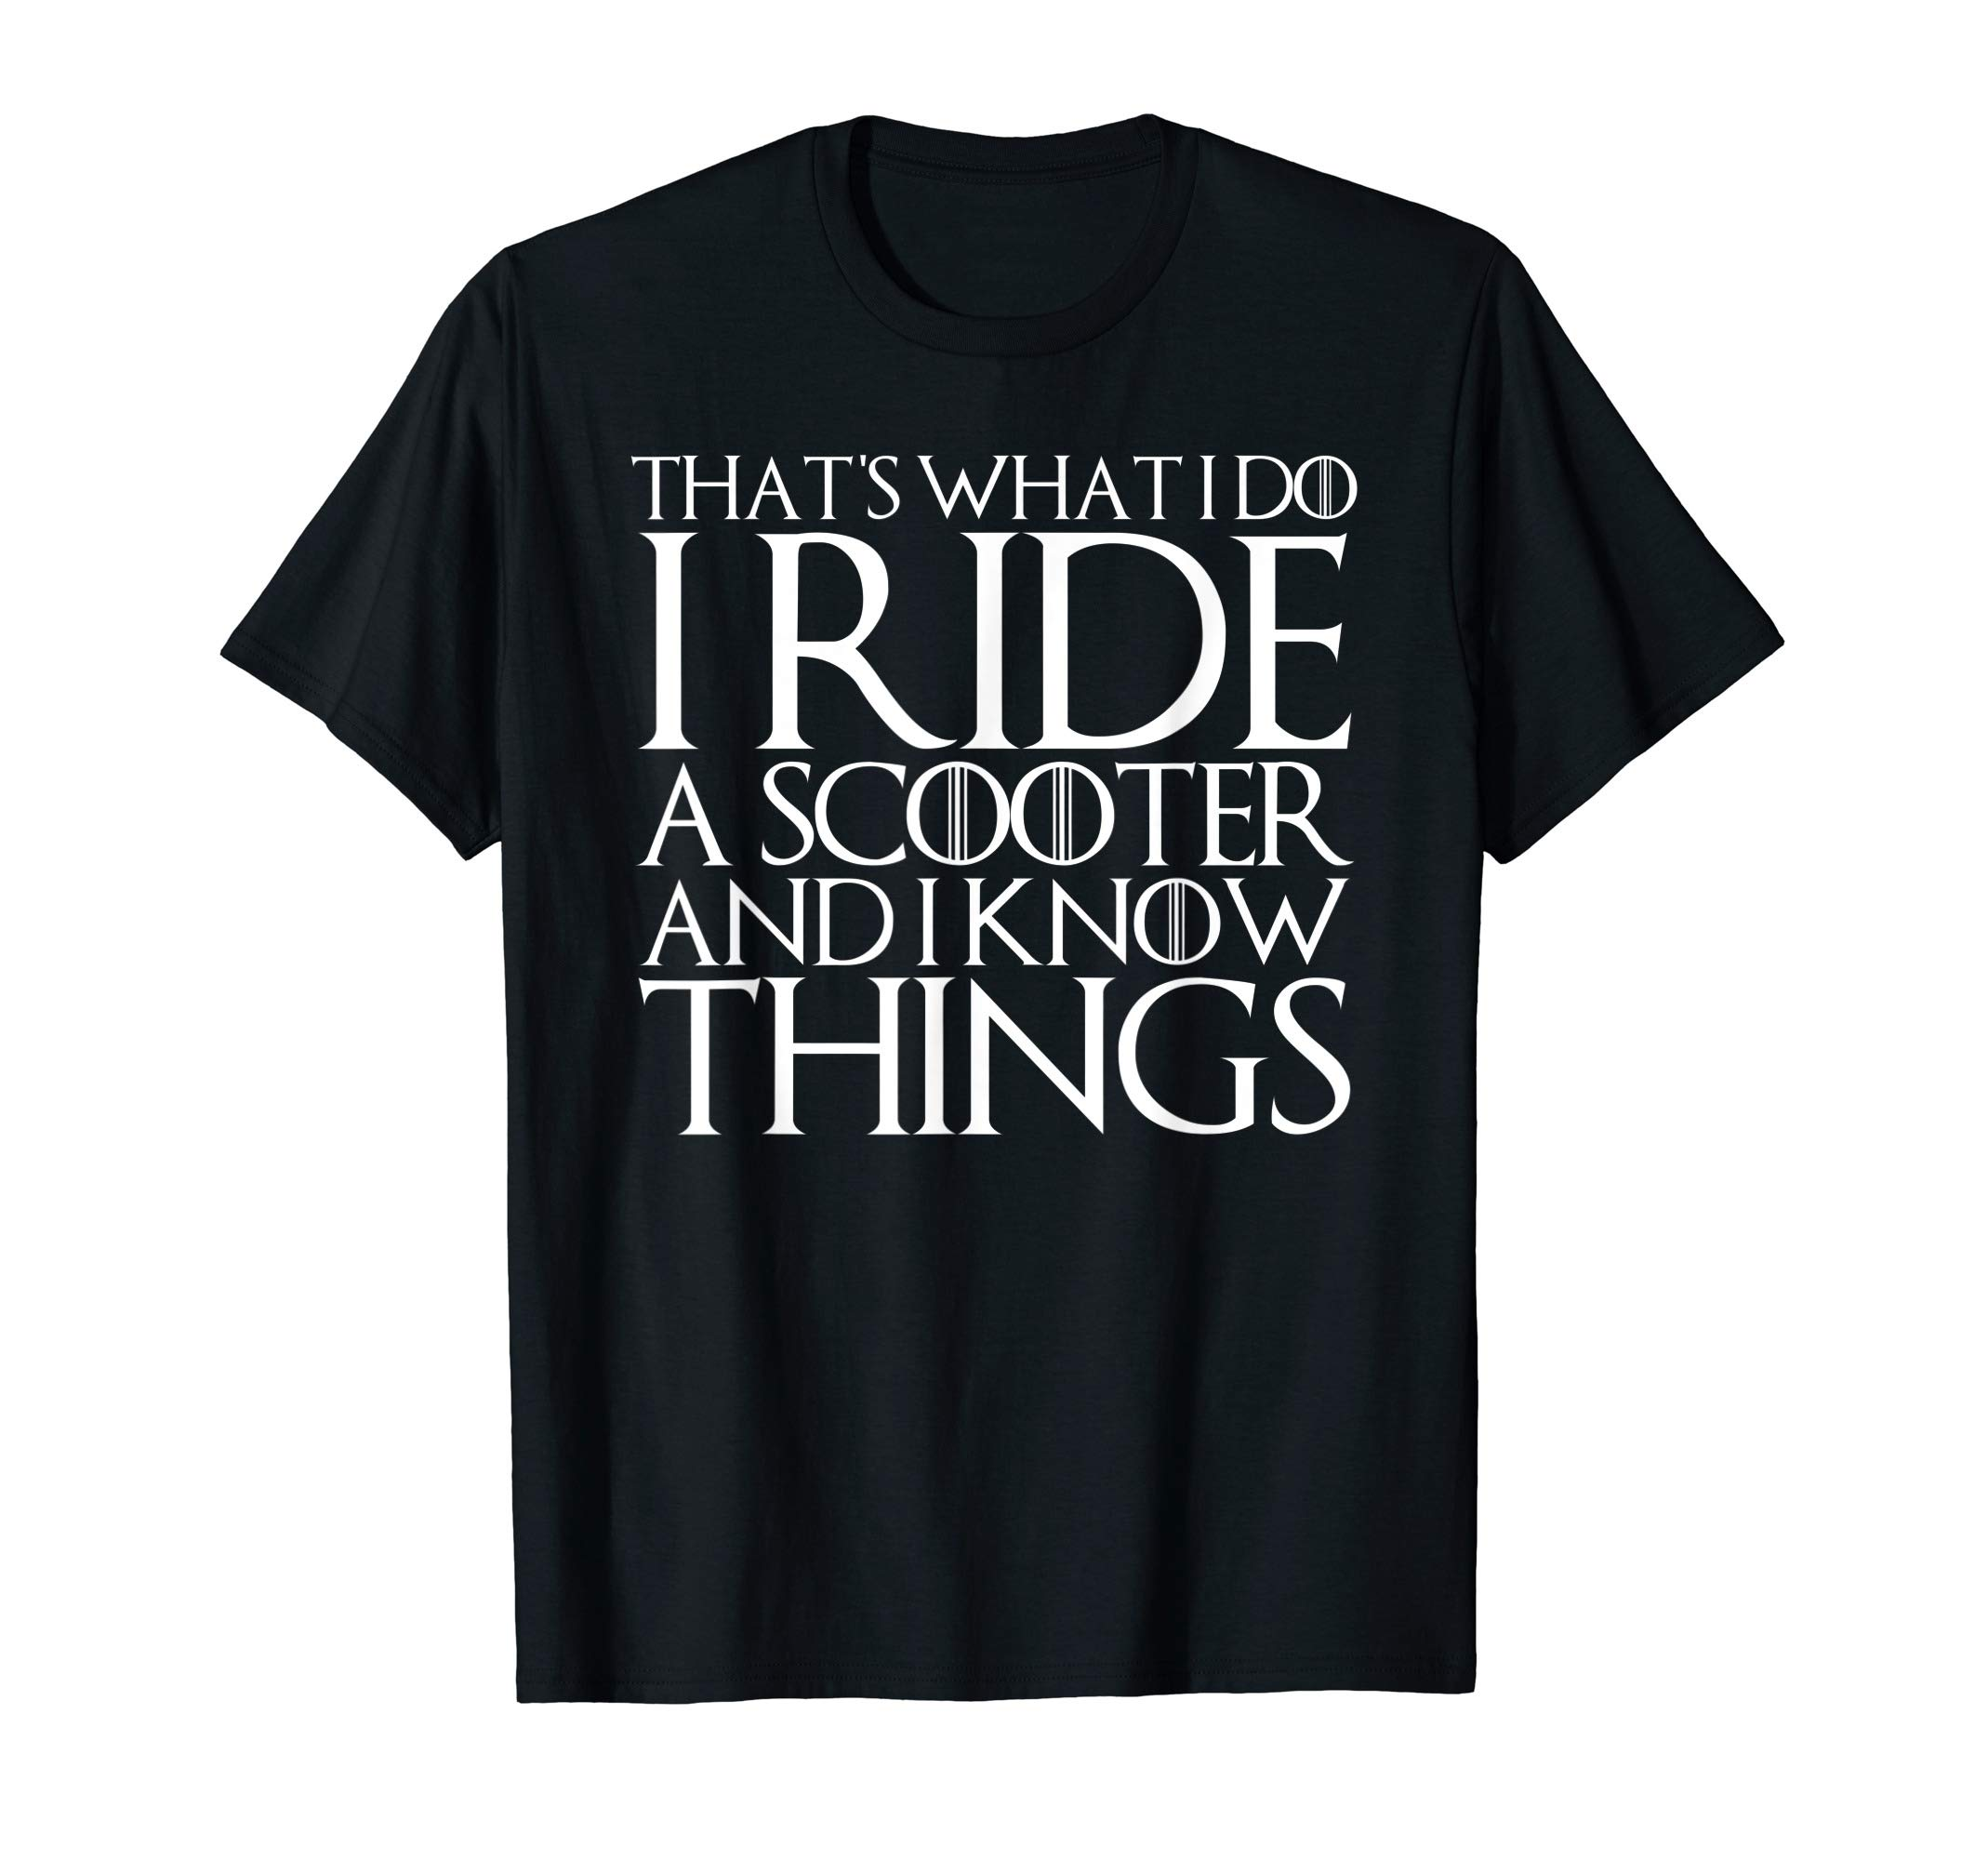 THAT'S WHAT I DO I RIDE A SCOOTER AND I KNOW THINGS T-Shirt by Funny Scooter Rider Motorcycle Motor Outfit